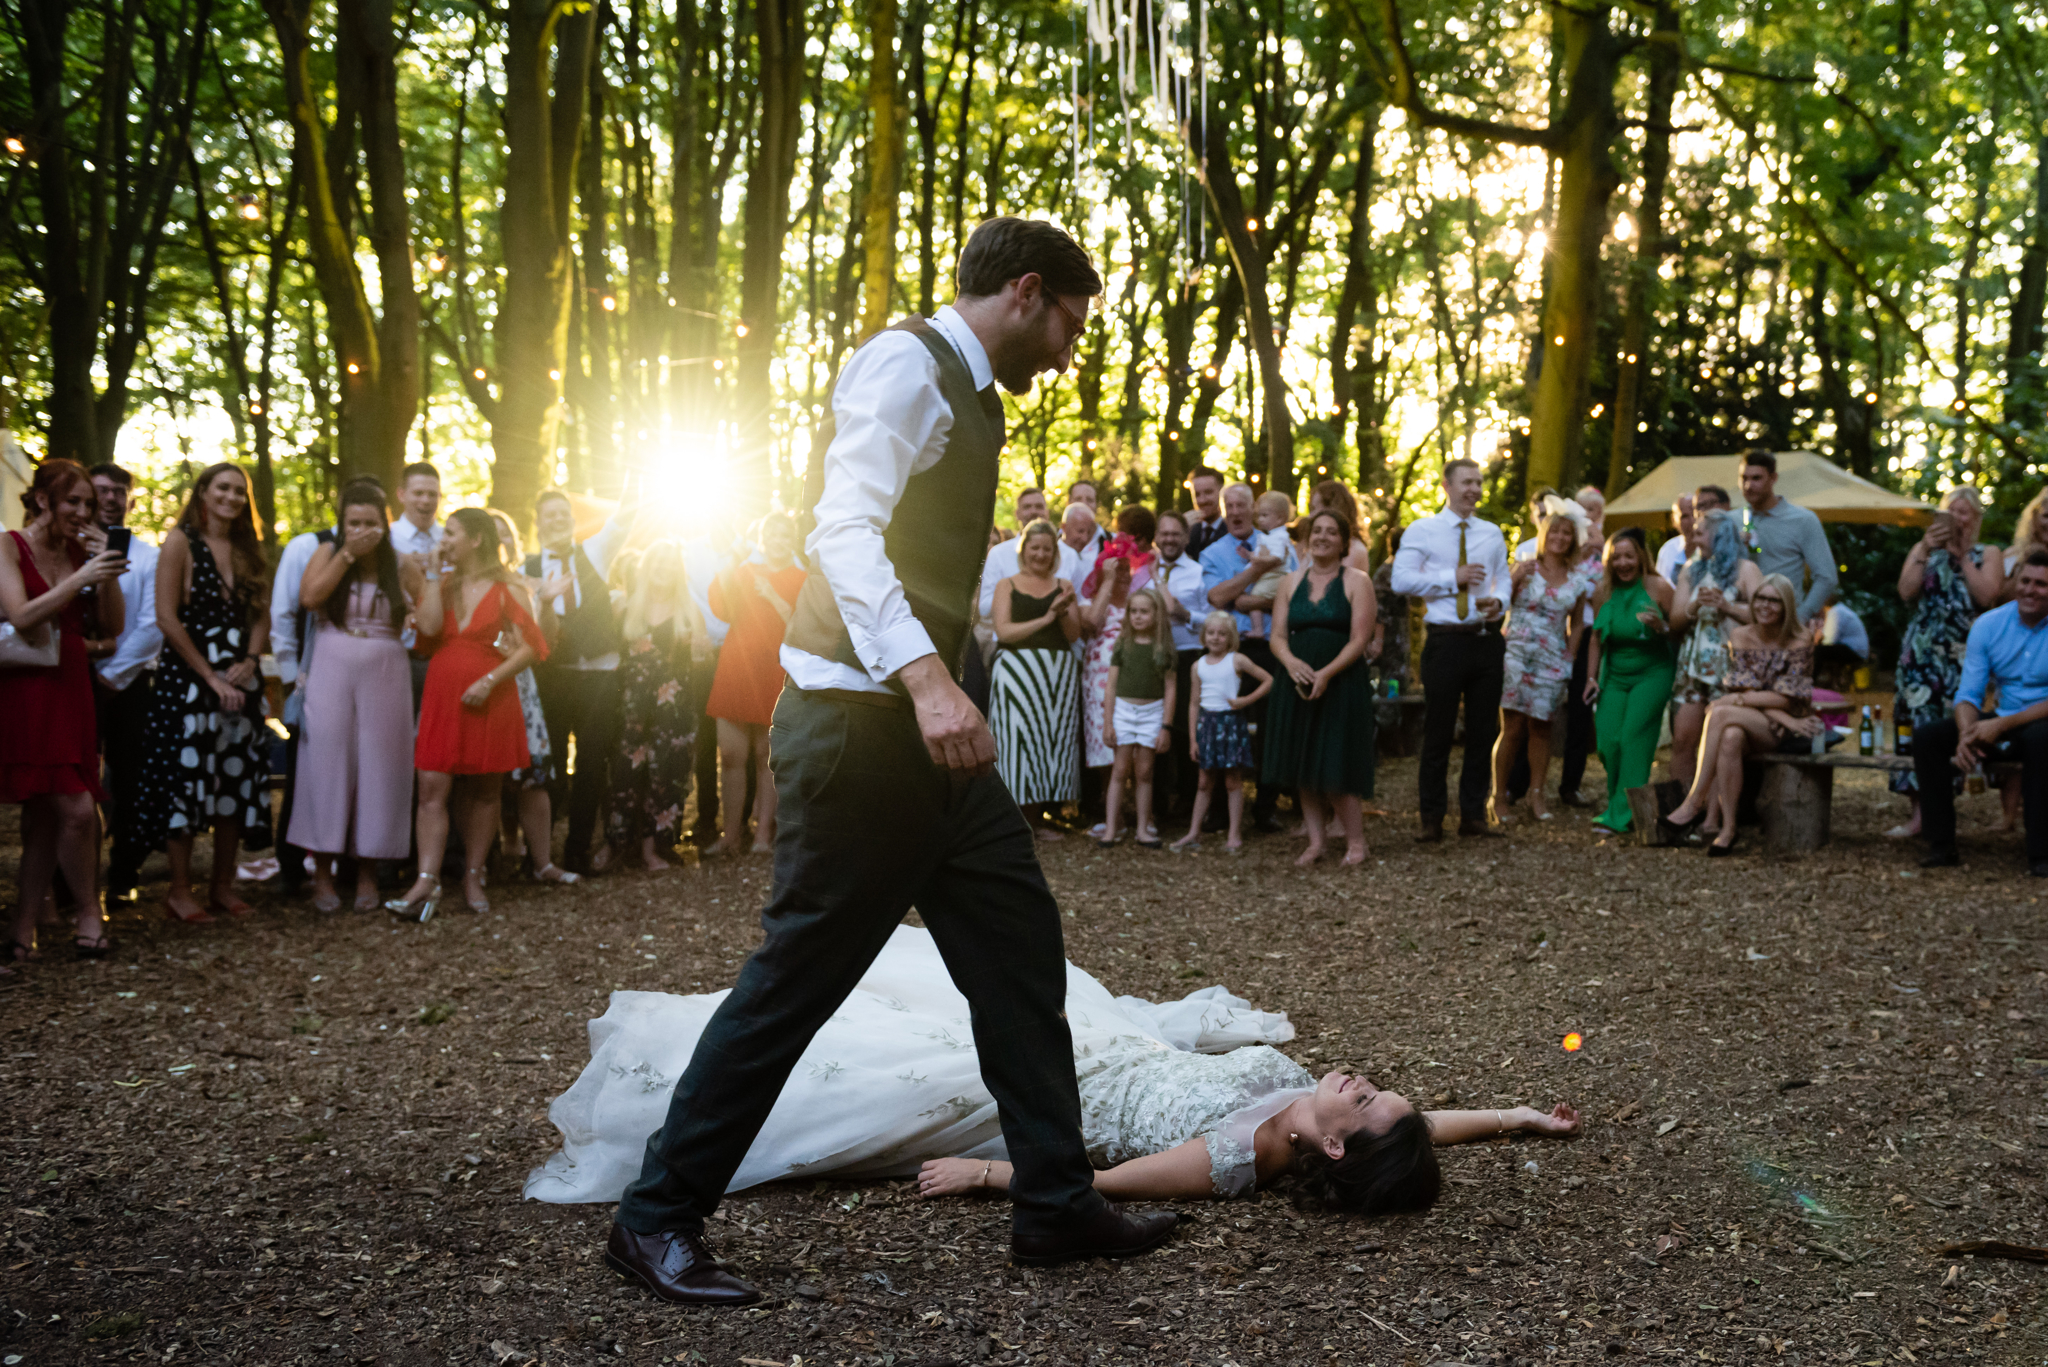 The bride trips over during the first dance at Woodland Weddings